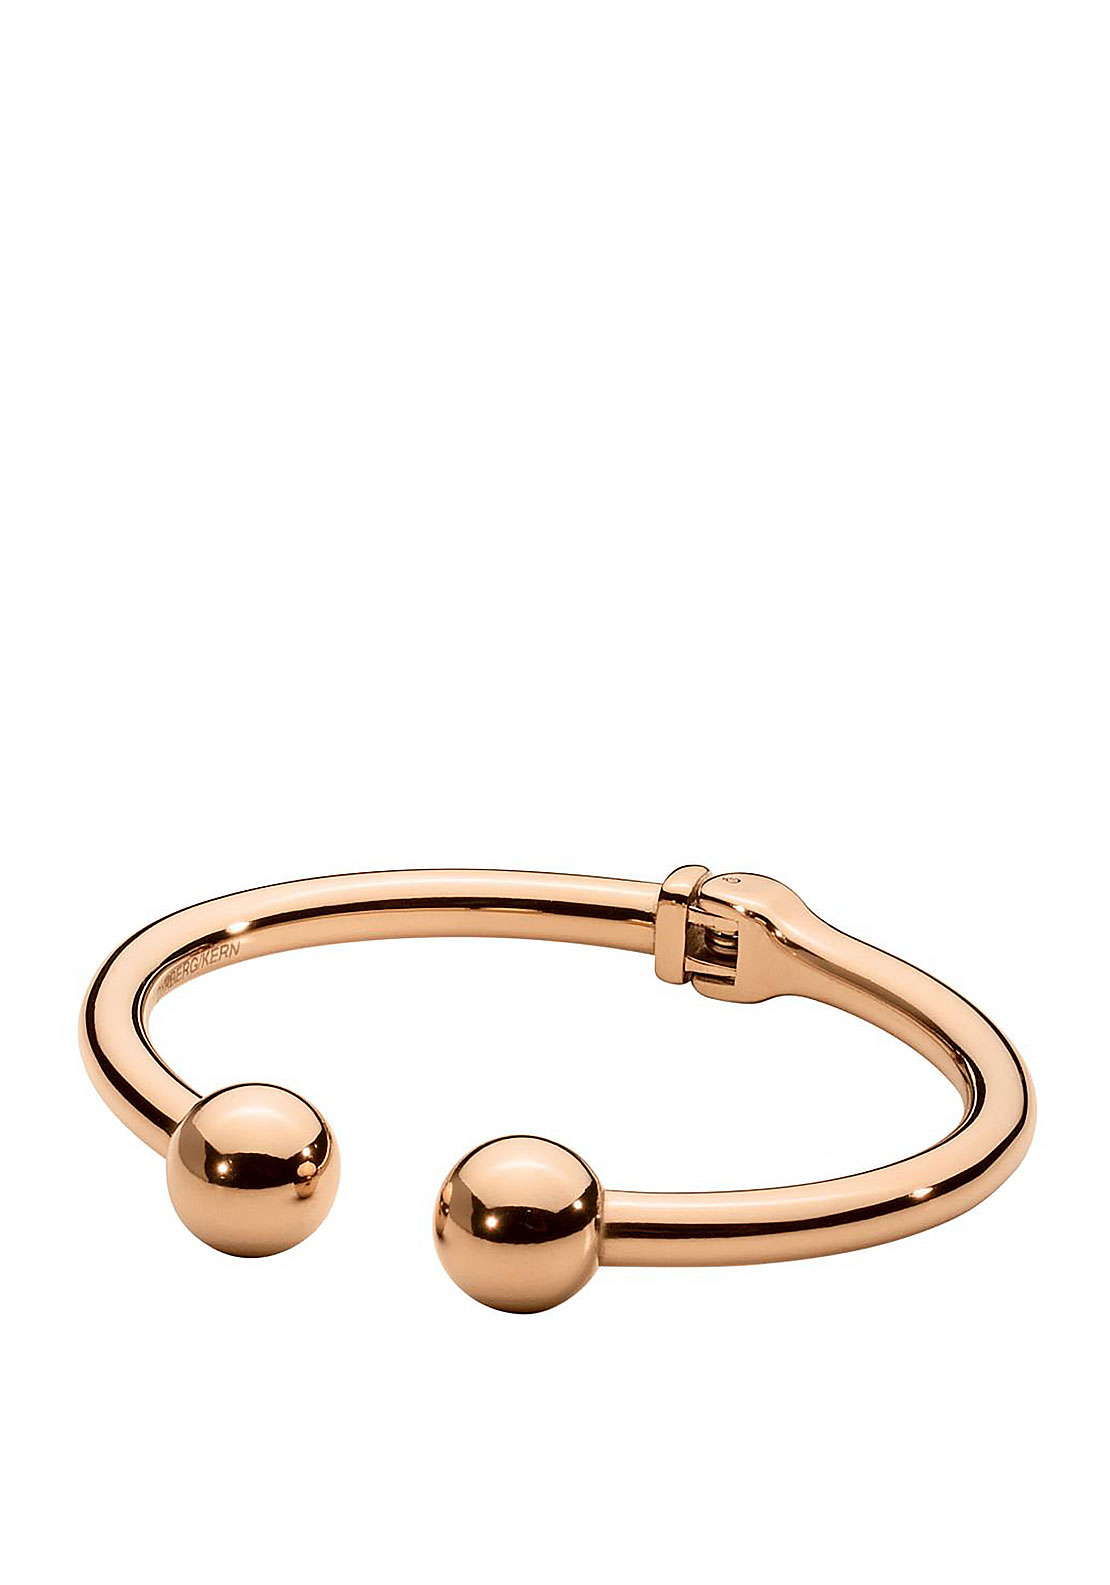 Dyrberg Kern Twiggy Bangle, Rose Gold